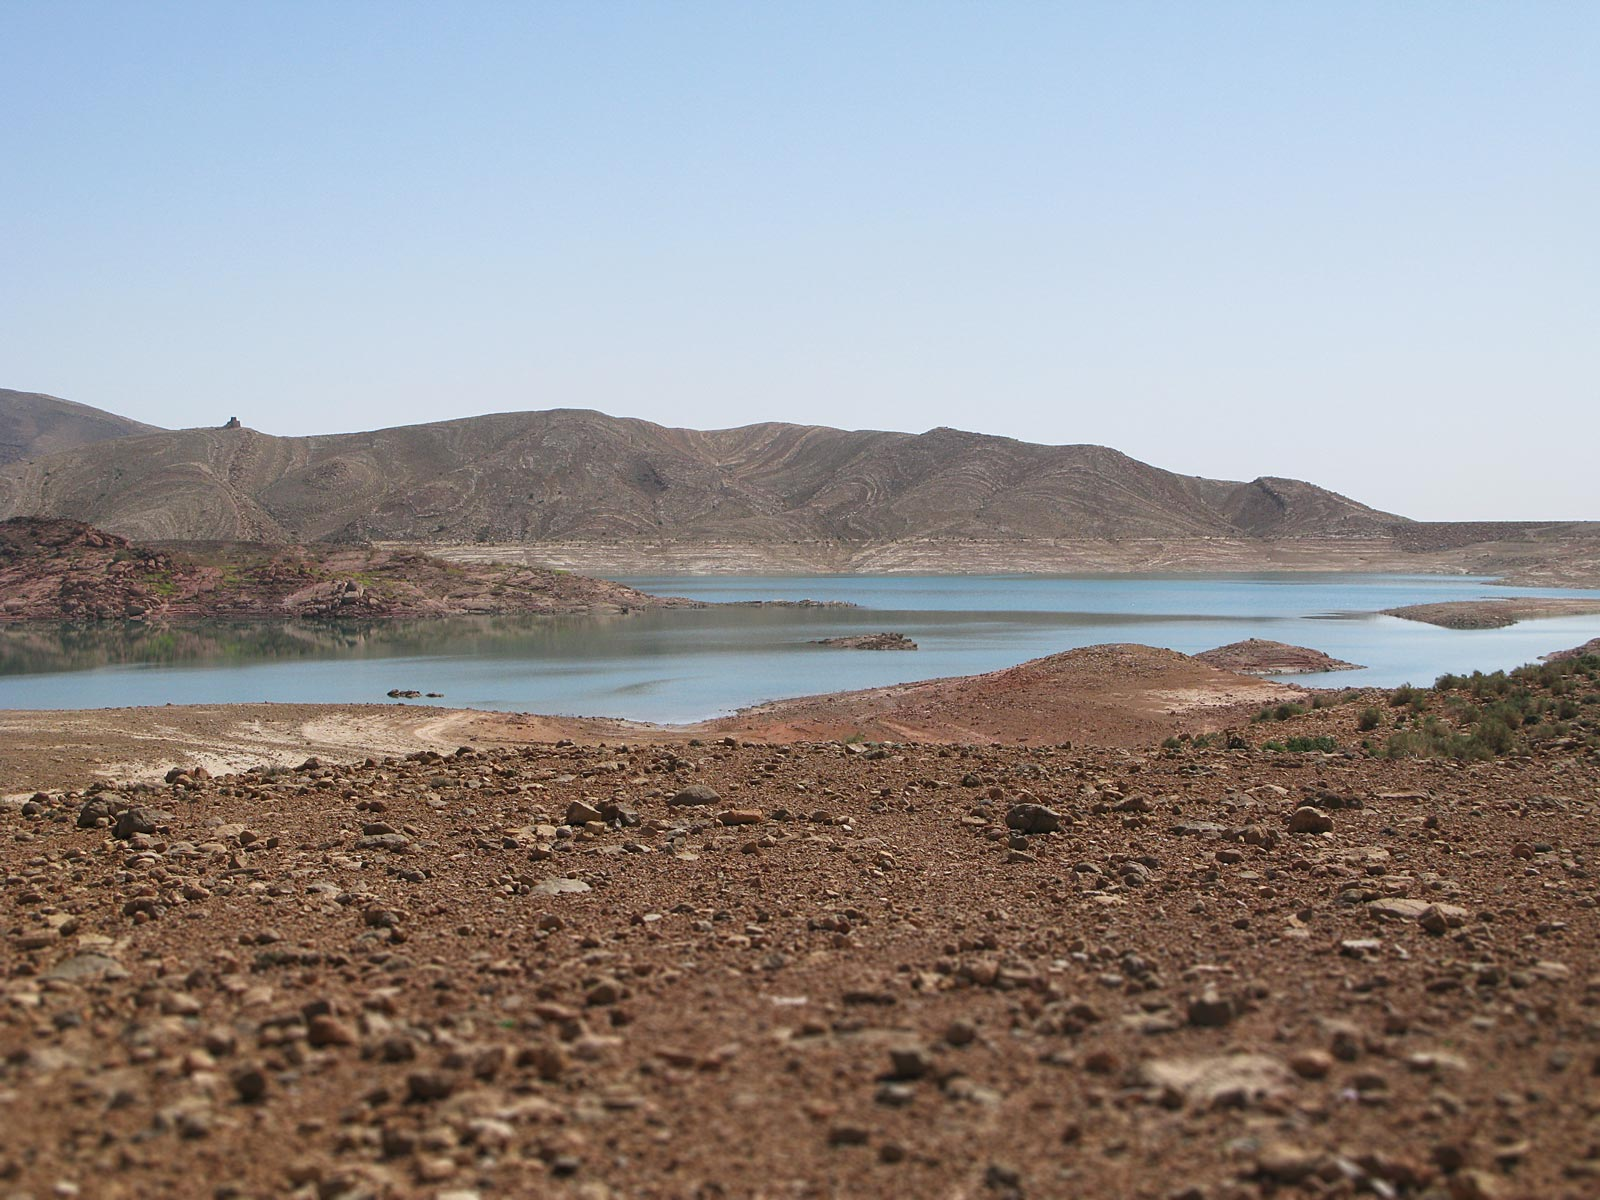 Reservoir in Morocco